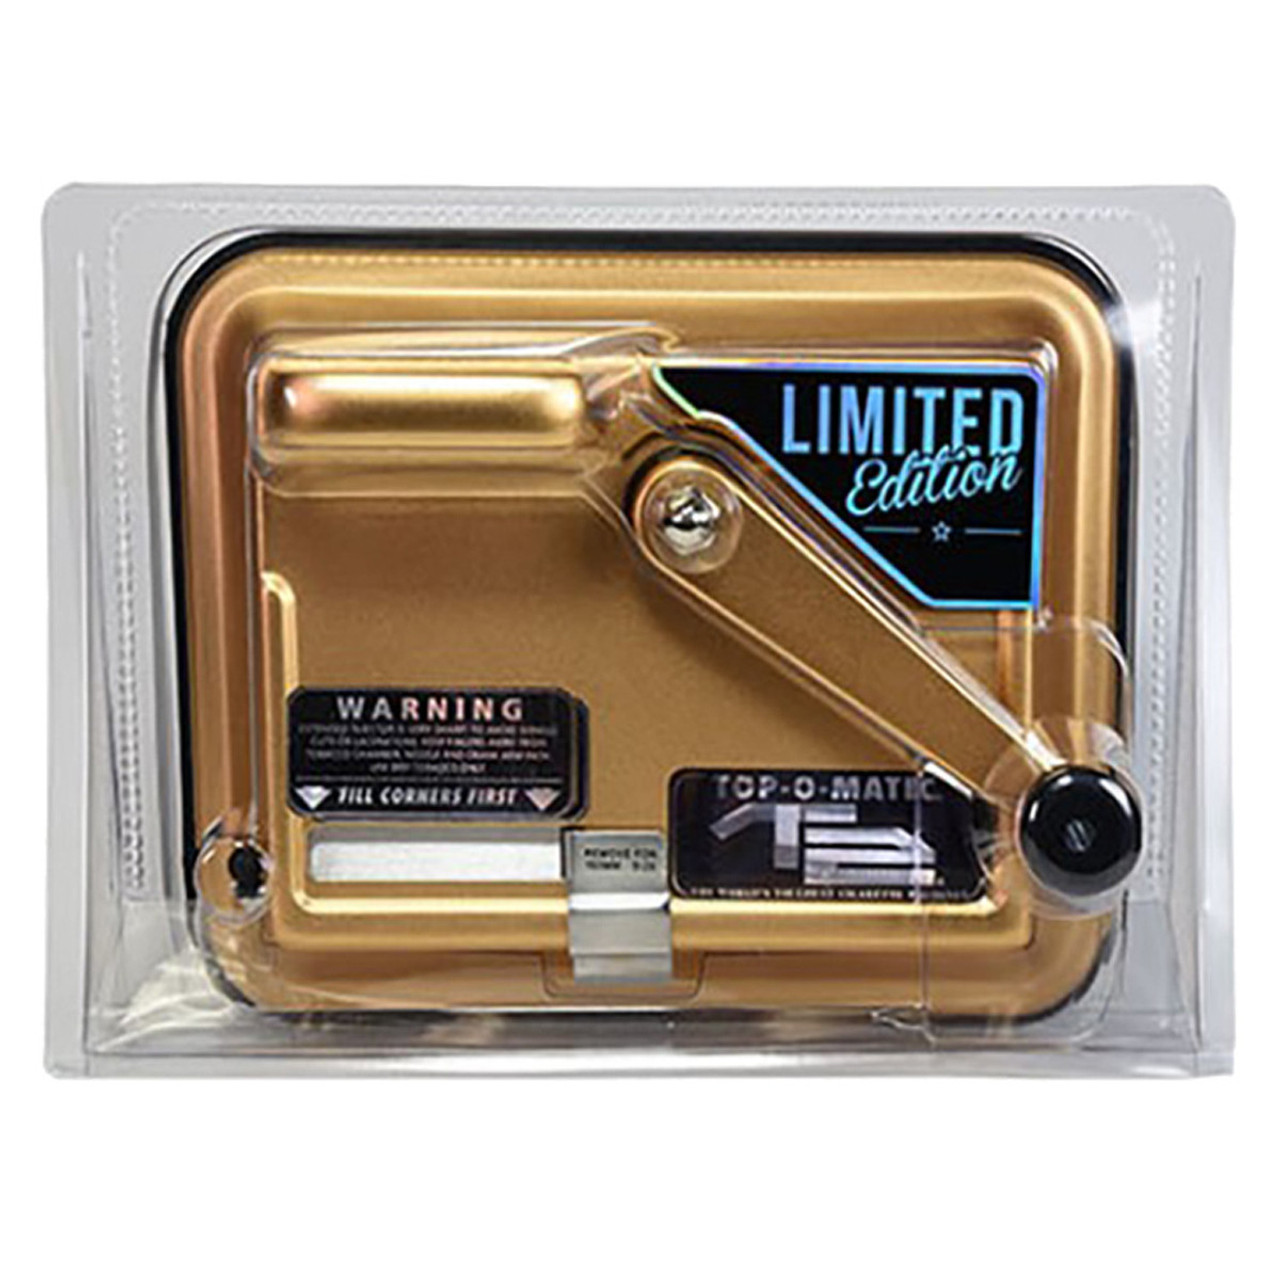 Top-O-Matic T2 Cigarette Rolling Injector Machine Limited Edition Gold